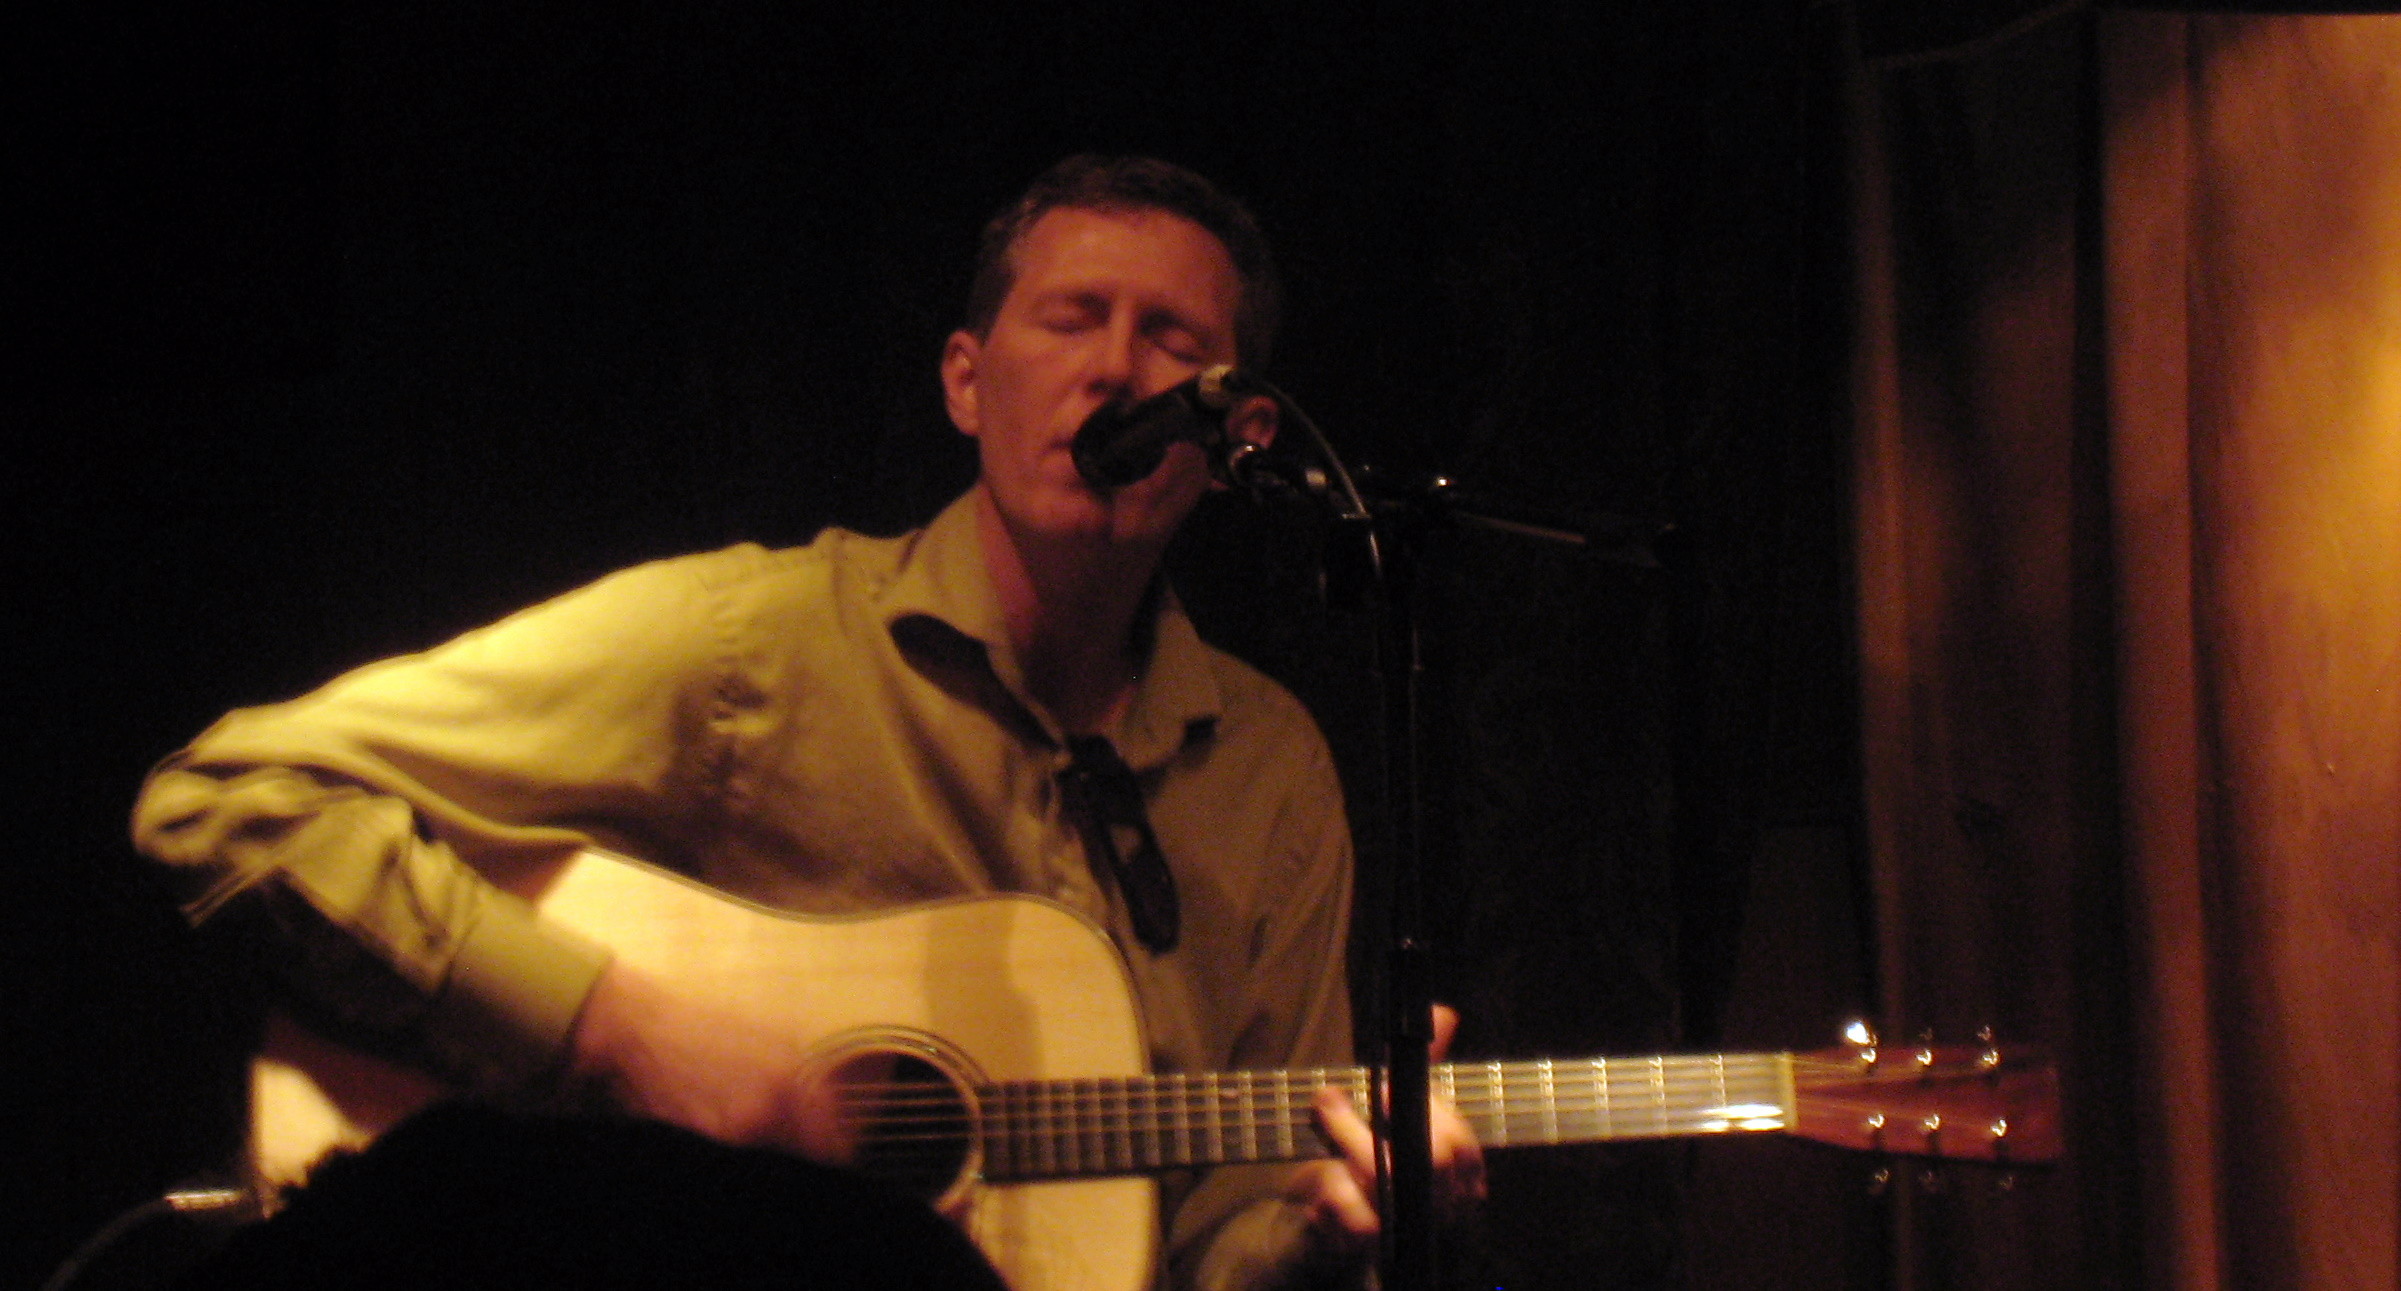 Tour Robbie Fulks 2011 Dates